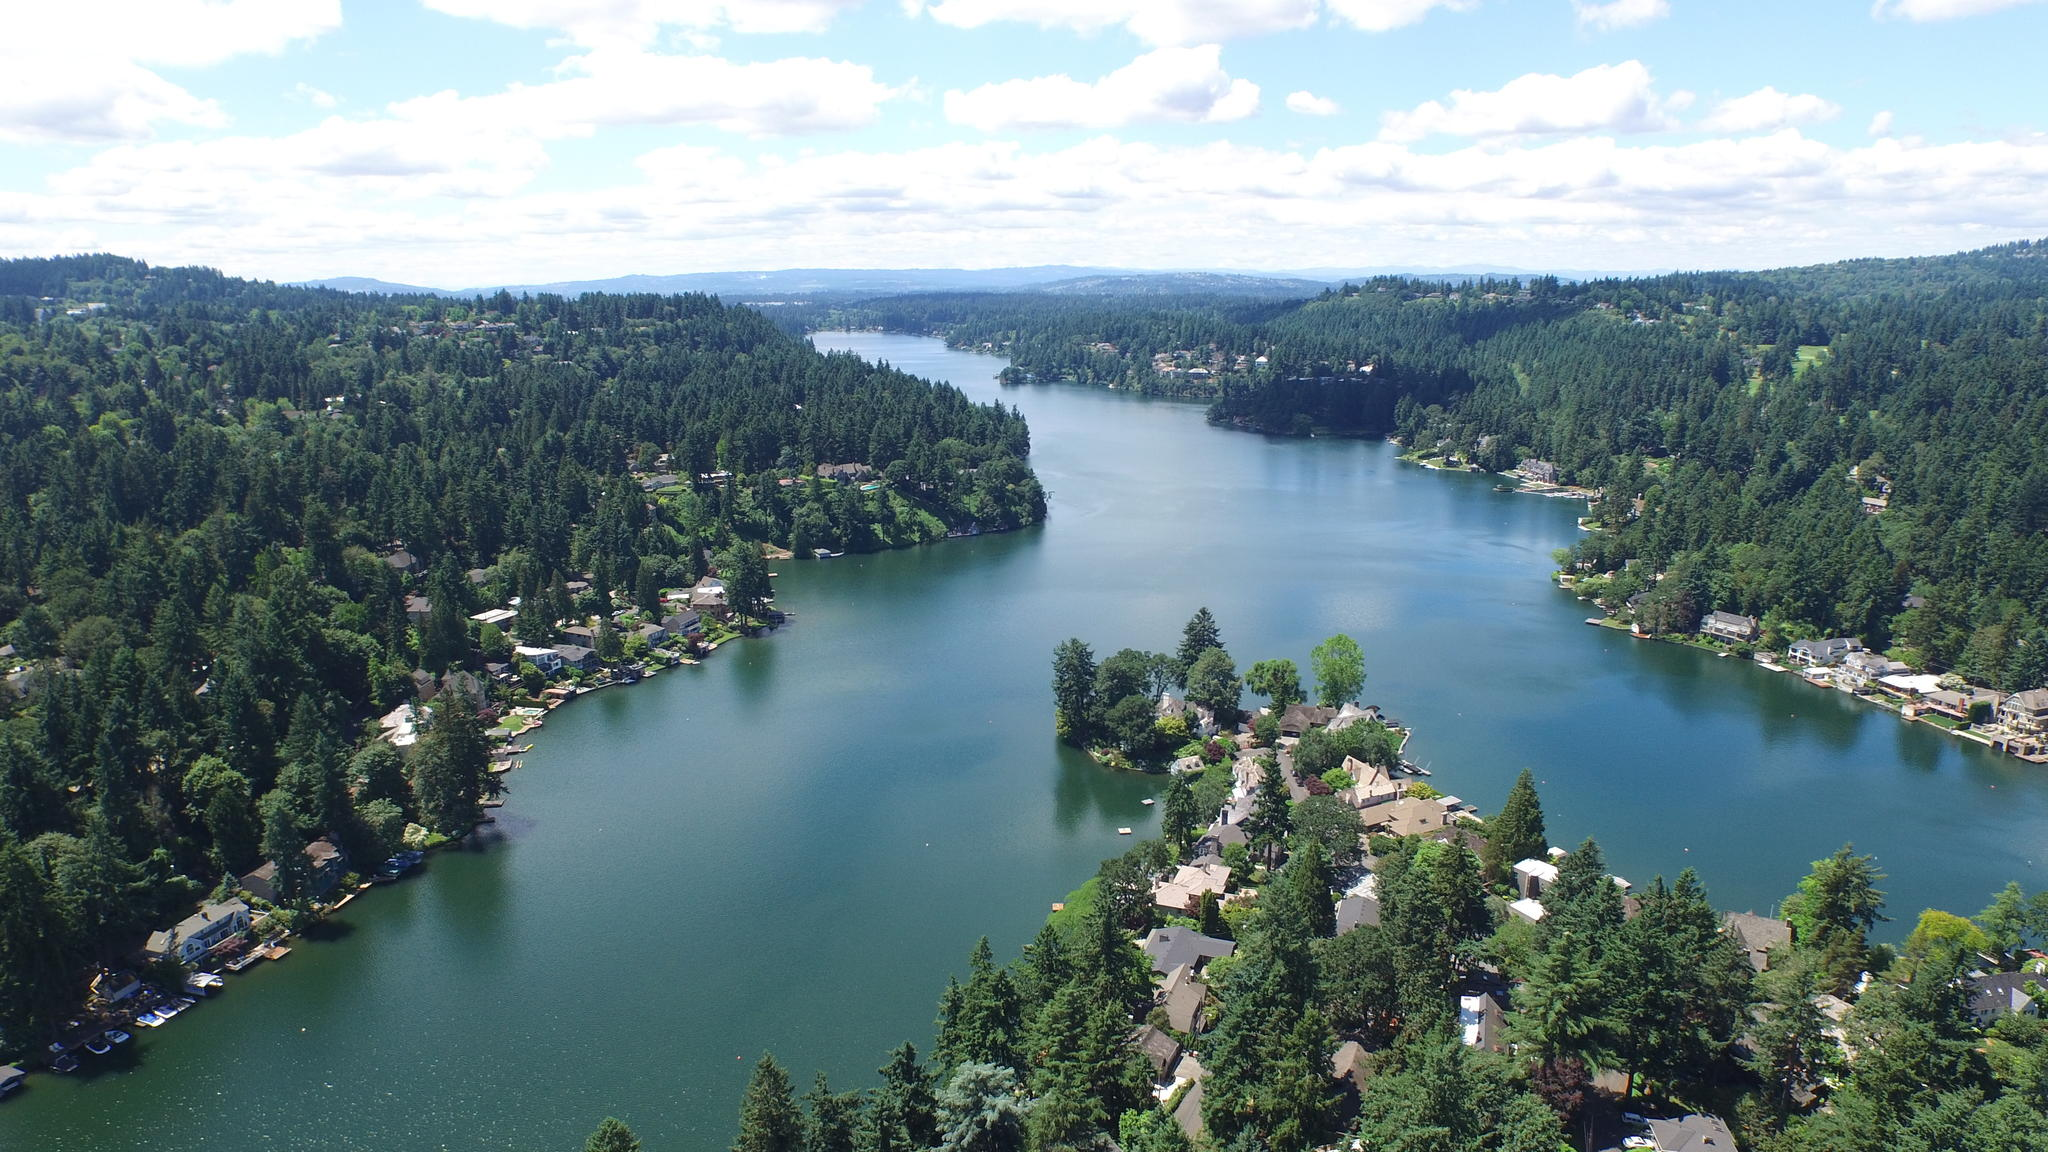 LAKE OSWEGO NEIGHBORHOOD TOUR